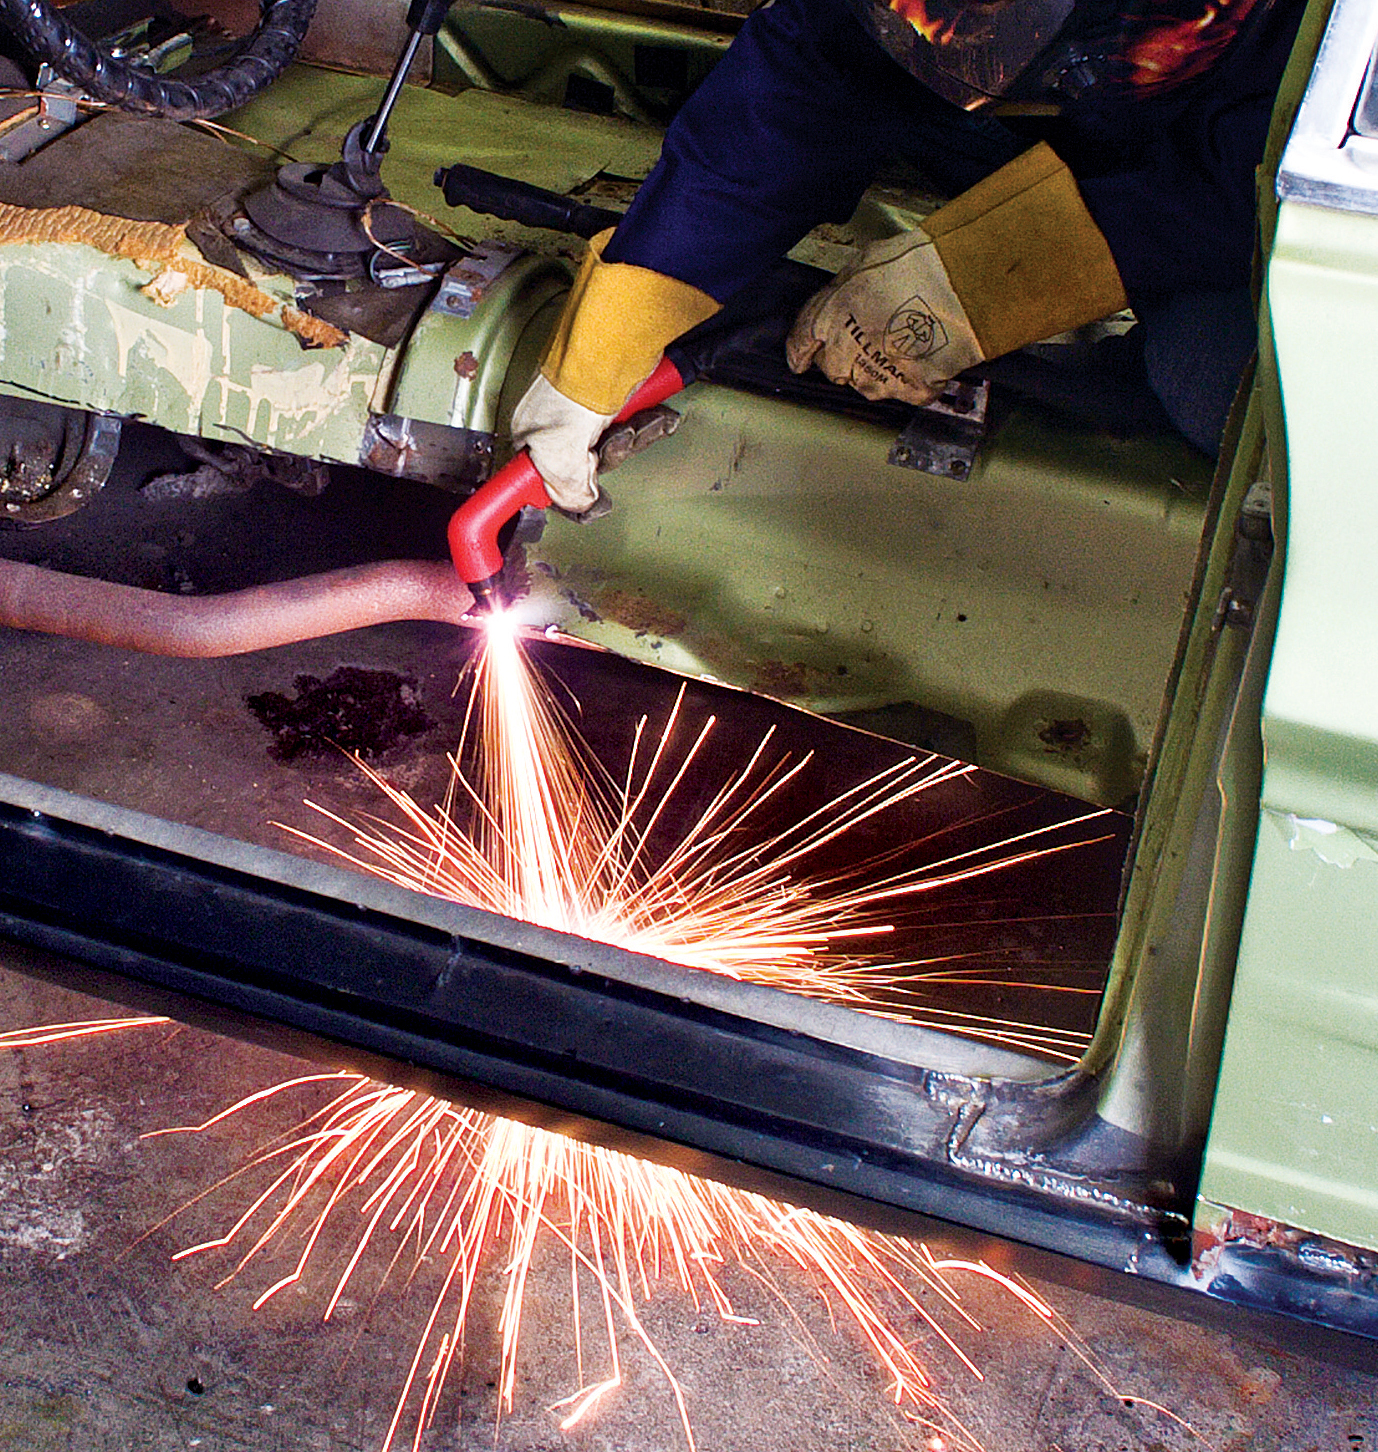 Exclusive Eastwood Engineered Versa Cut Plasma Cutter Launched